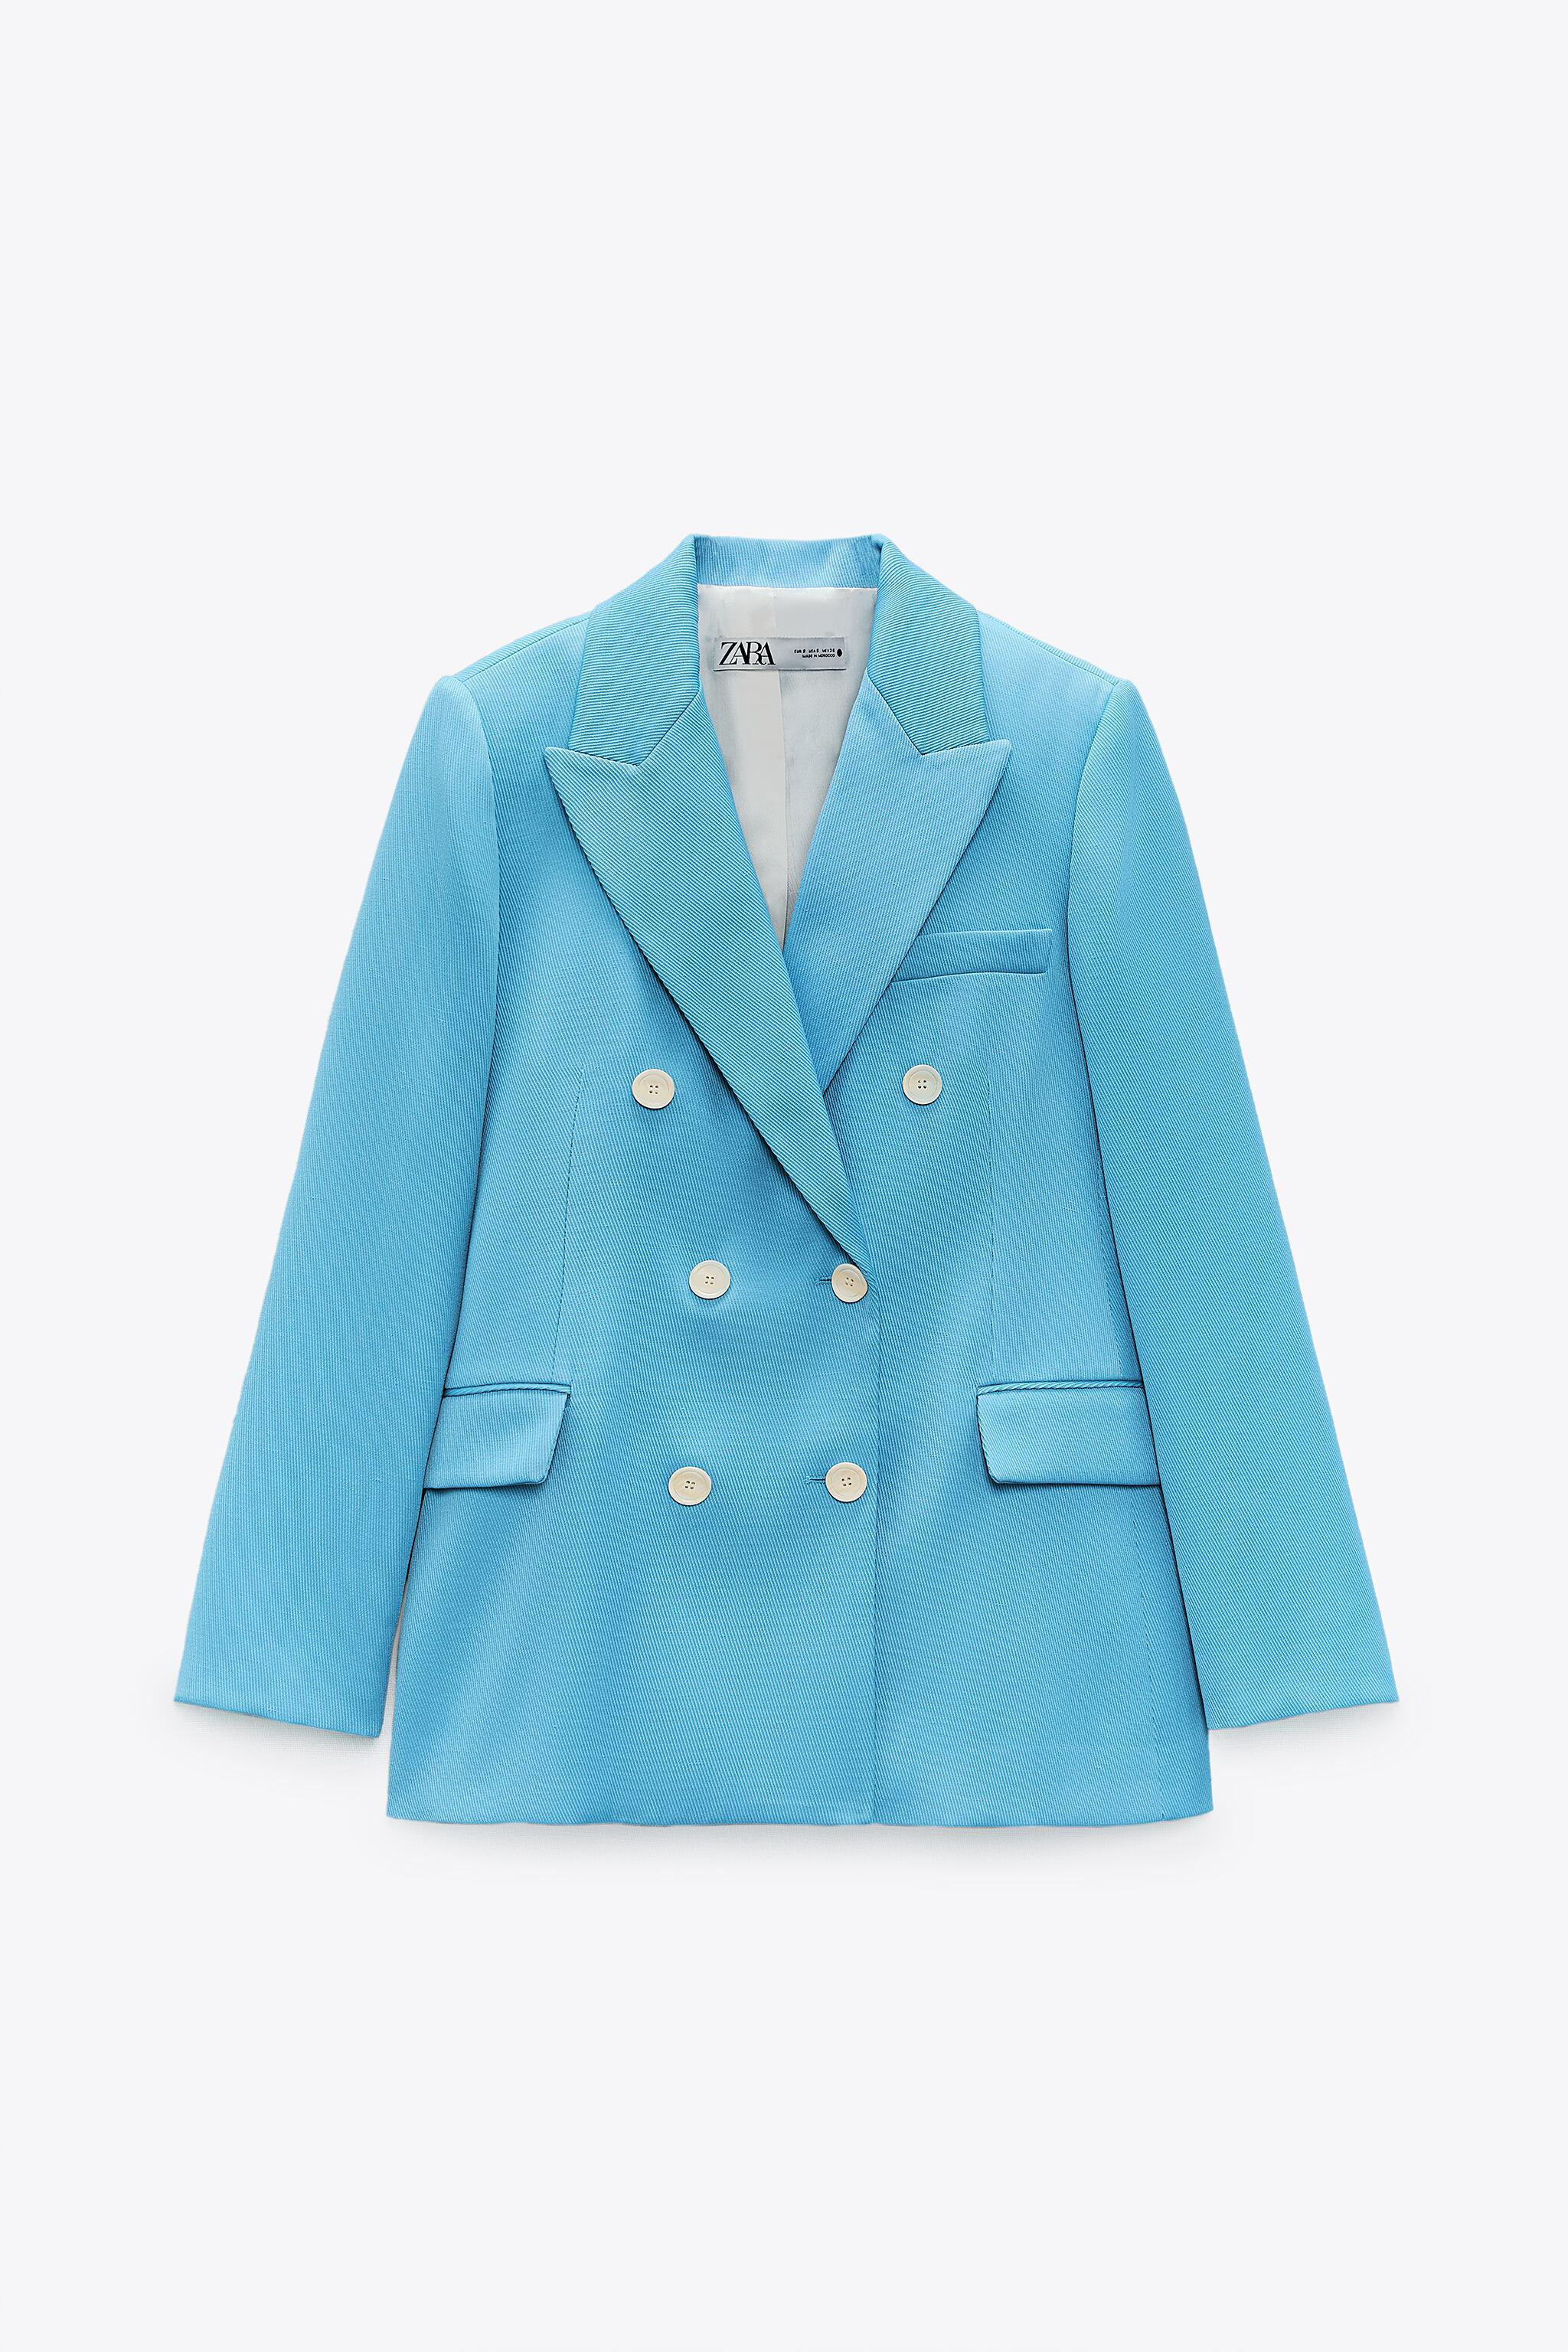 DOUBLE BREASTED BLAZER WITH POCKETS 2